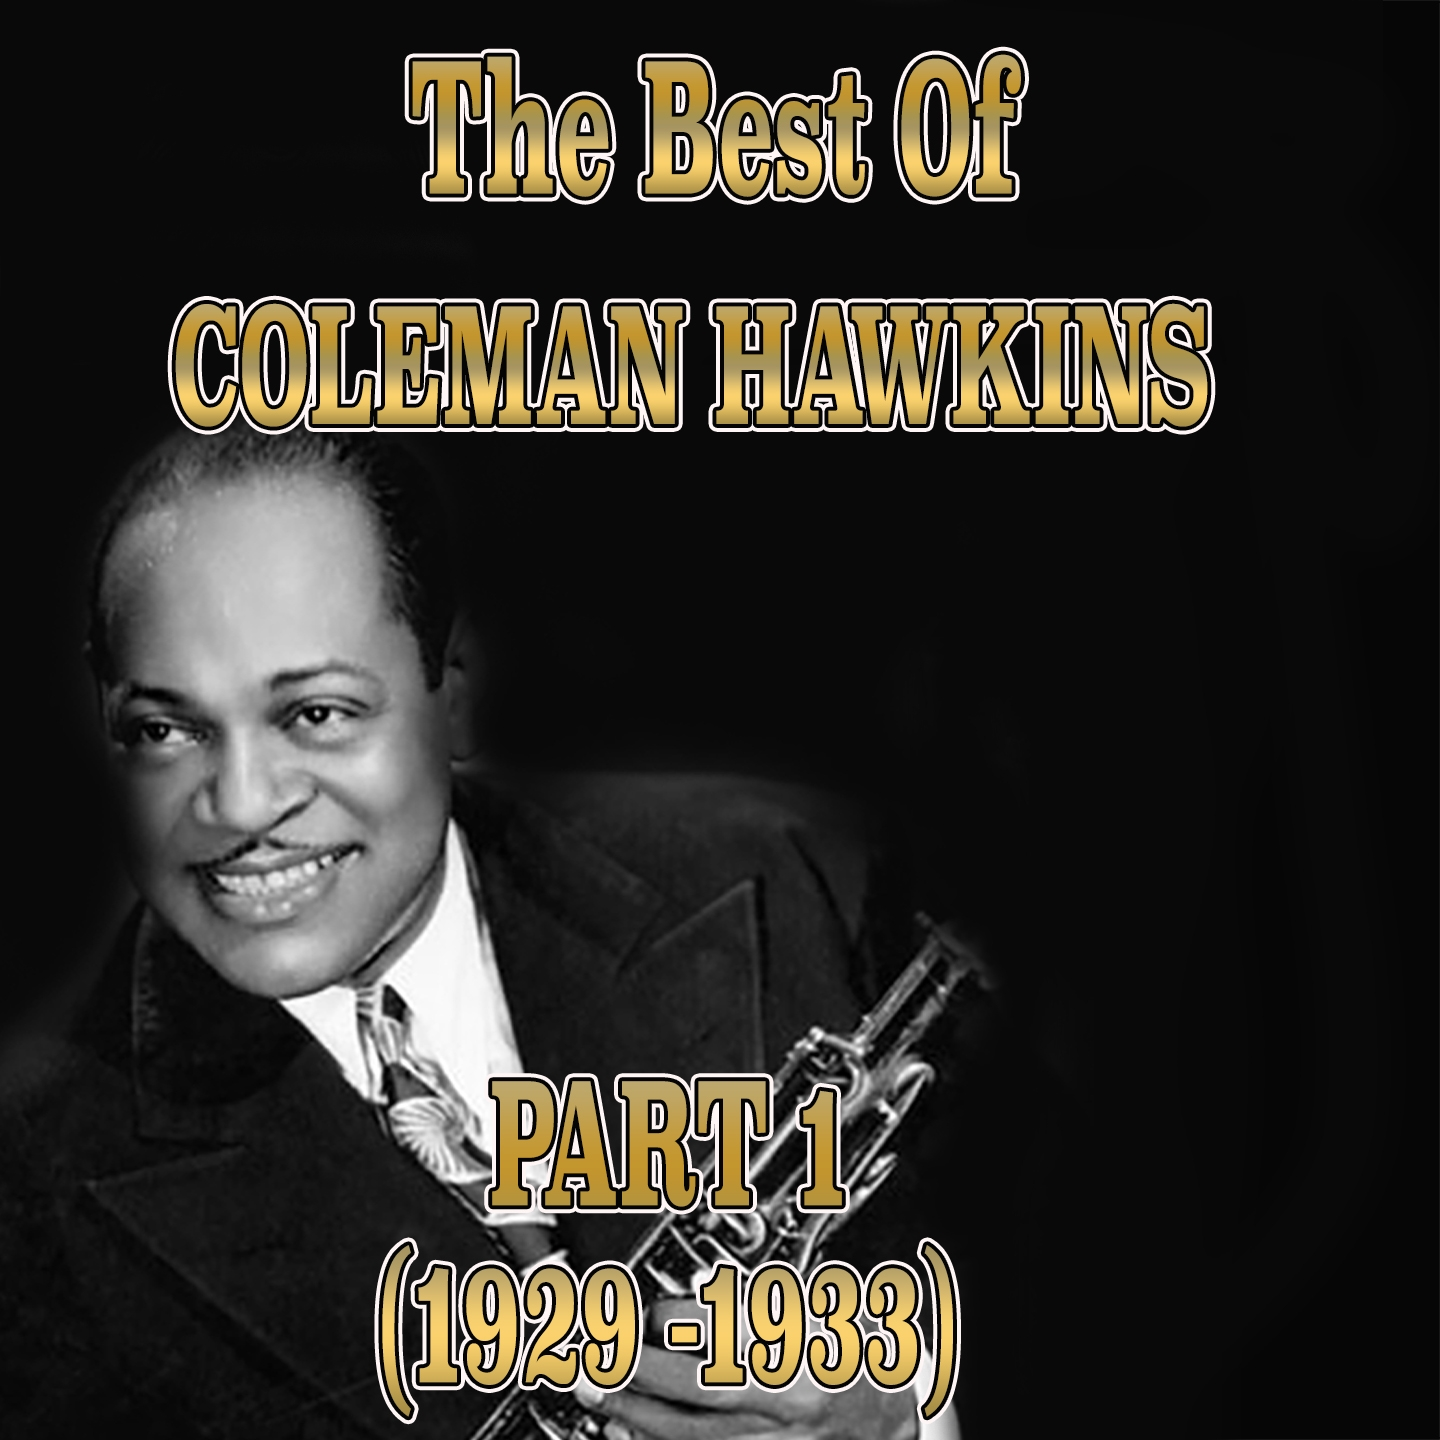 The Best of Coleman Hawkins, Vol. 1